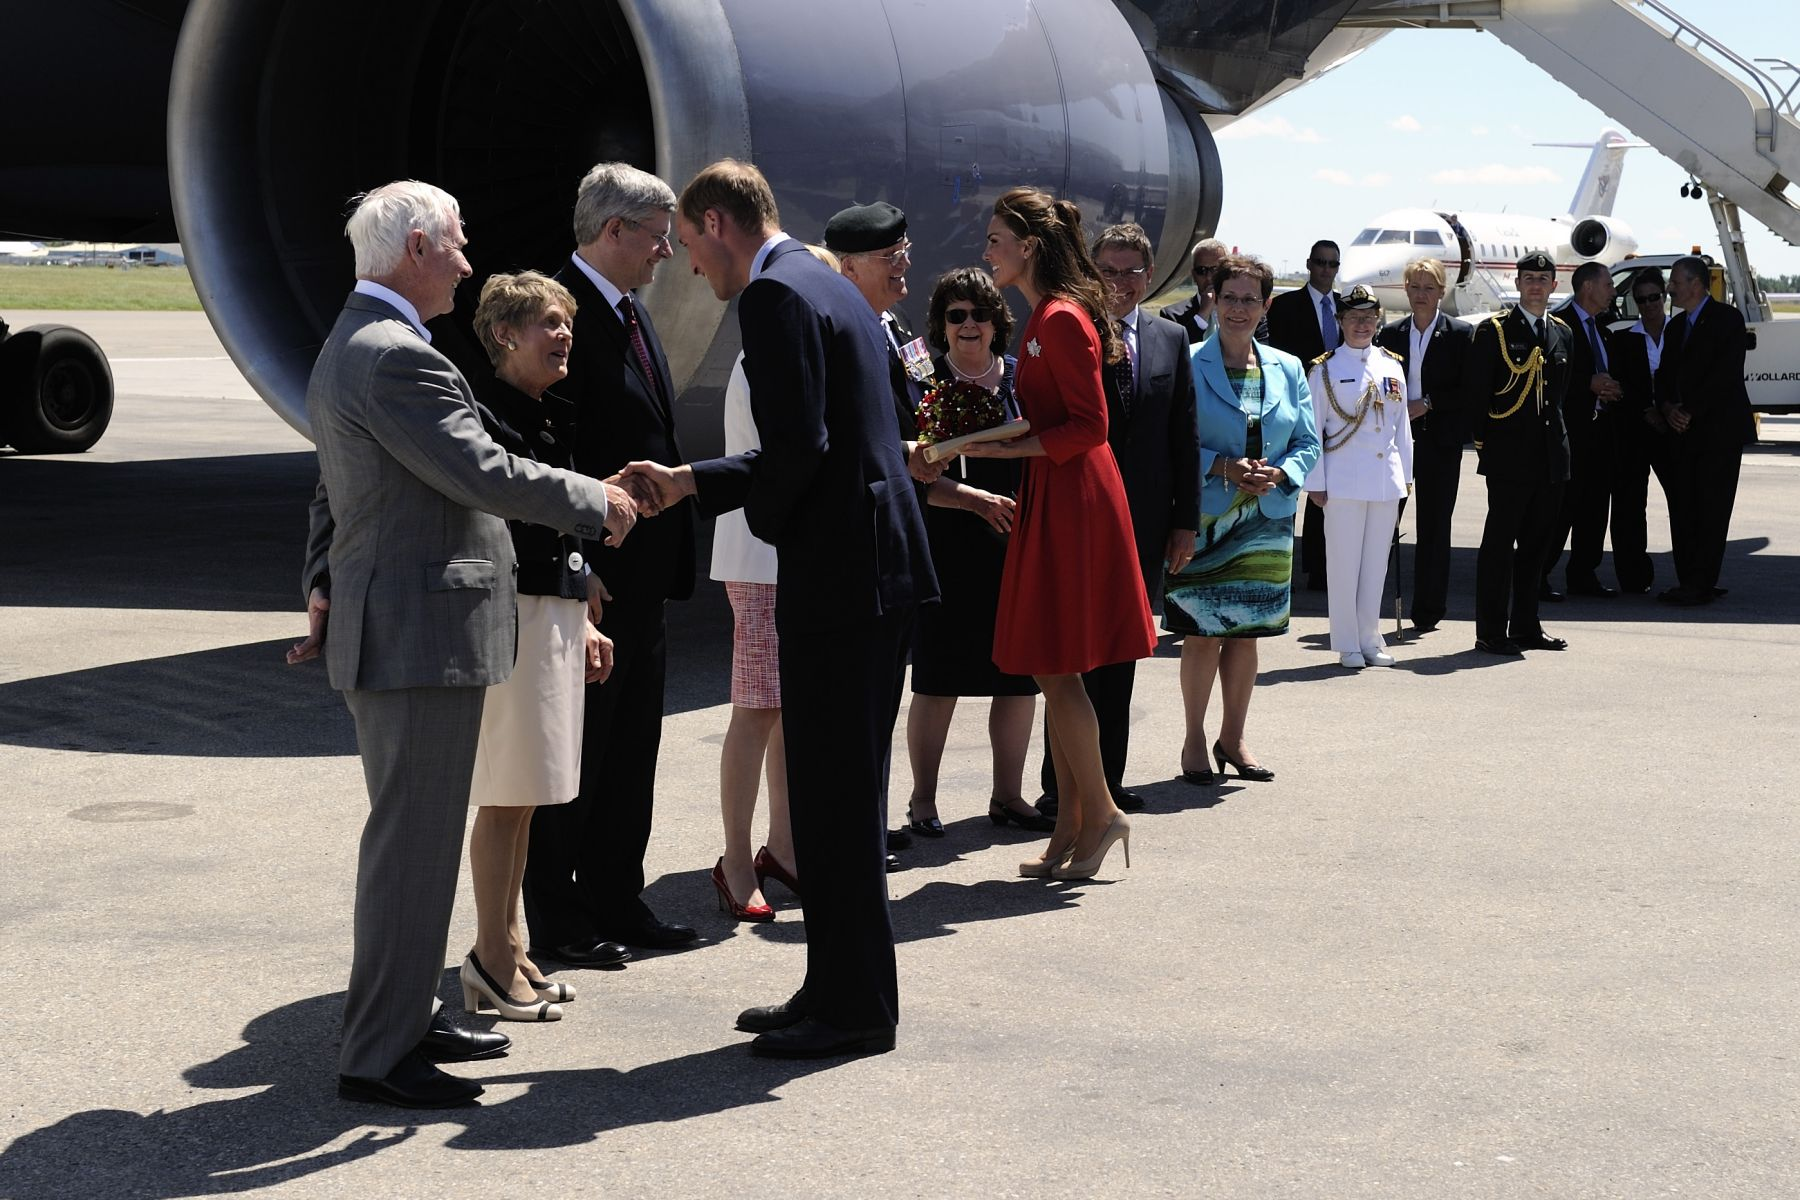 On July 8, 2011, Their Excellencies the Right Honourable David Johnston, Governor General of Canada, and Mrs. Sharon Johnston bid farewell to Their Royal Highnesses The Duke and Duchess of Cambridge in Calgary.